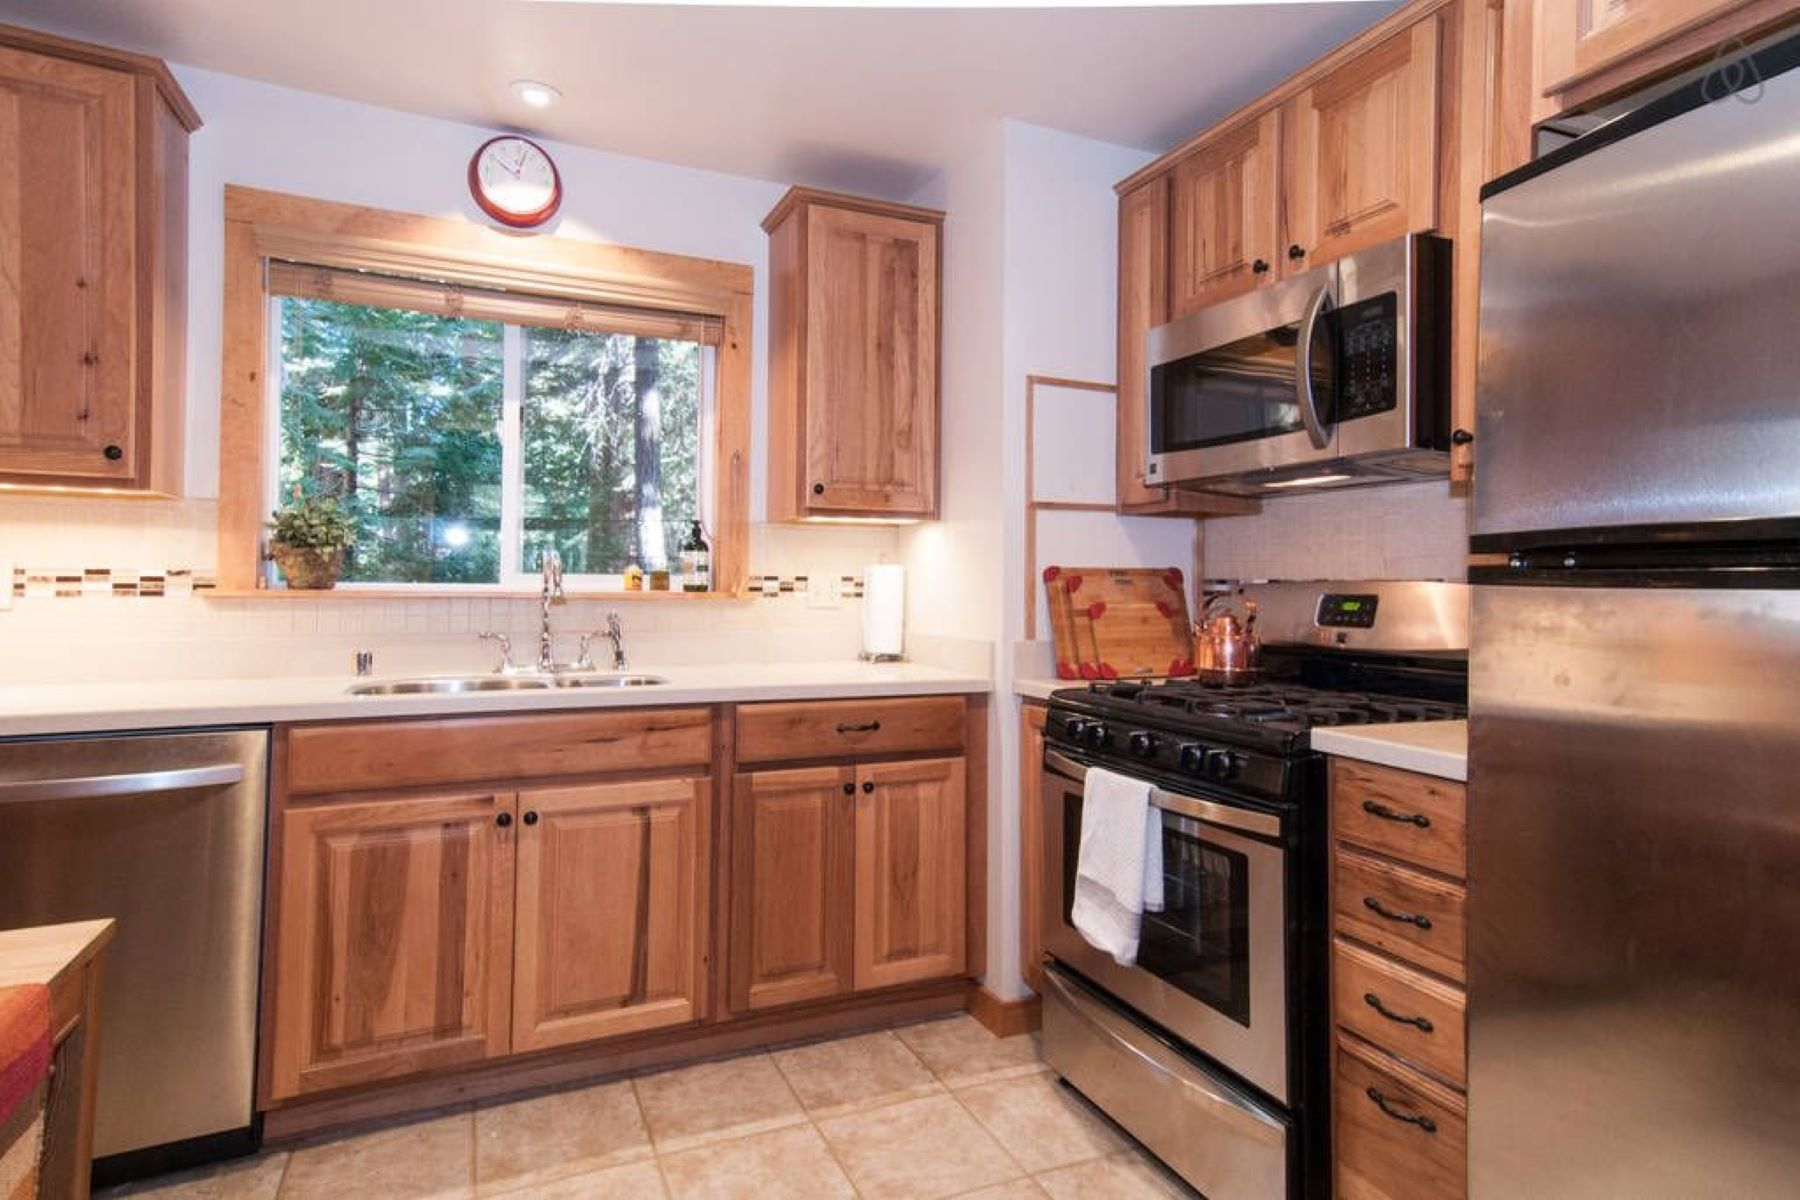 Additional photo for property listing at 2695 Cedar Lane, Tahoe City, CA 2695 Cedar Lane Tahoe City, California 96145 United States